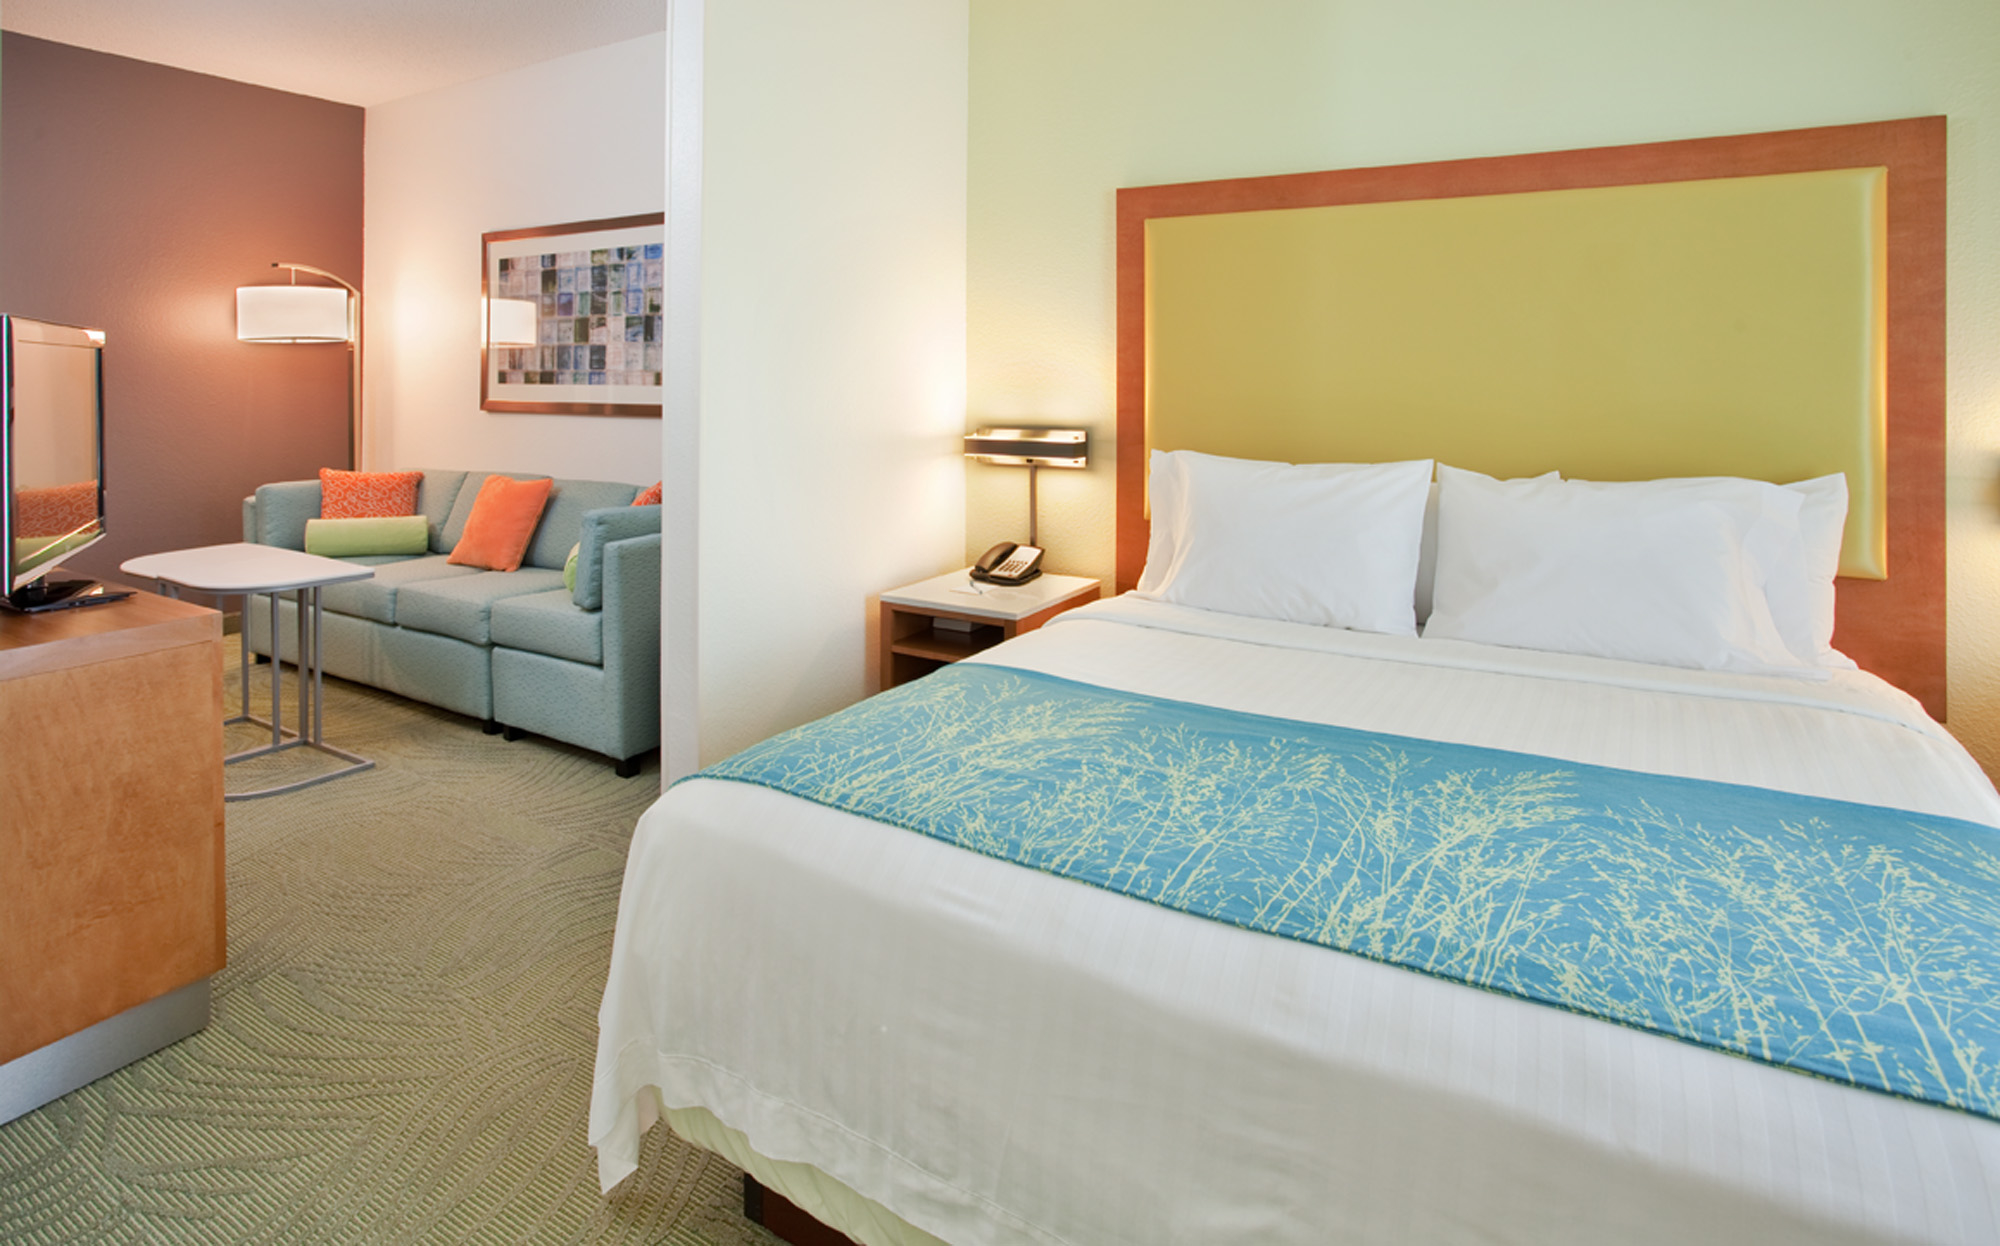 SpringHill Suites by Marriott Houston Brookhollow image 4